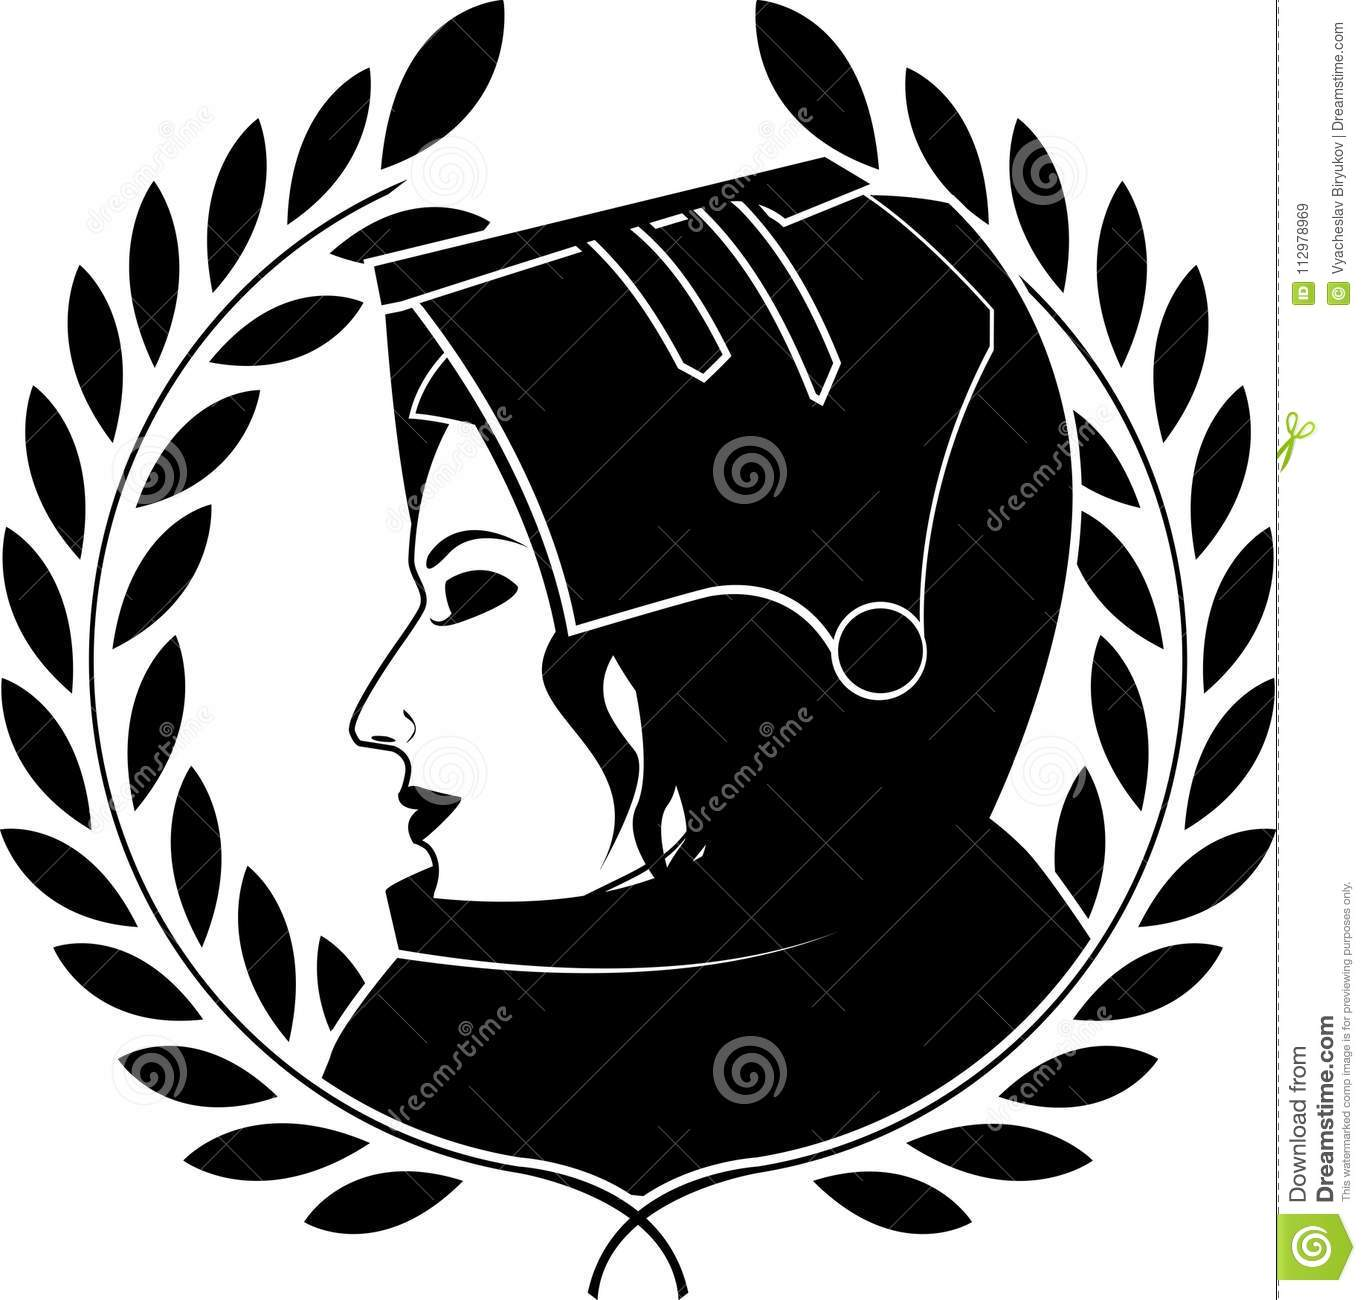 Jeanne darc and laurel wreath